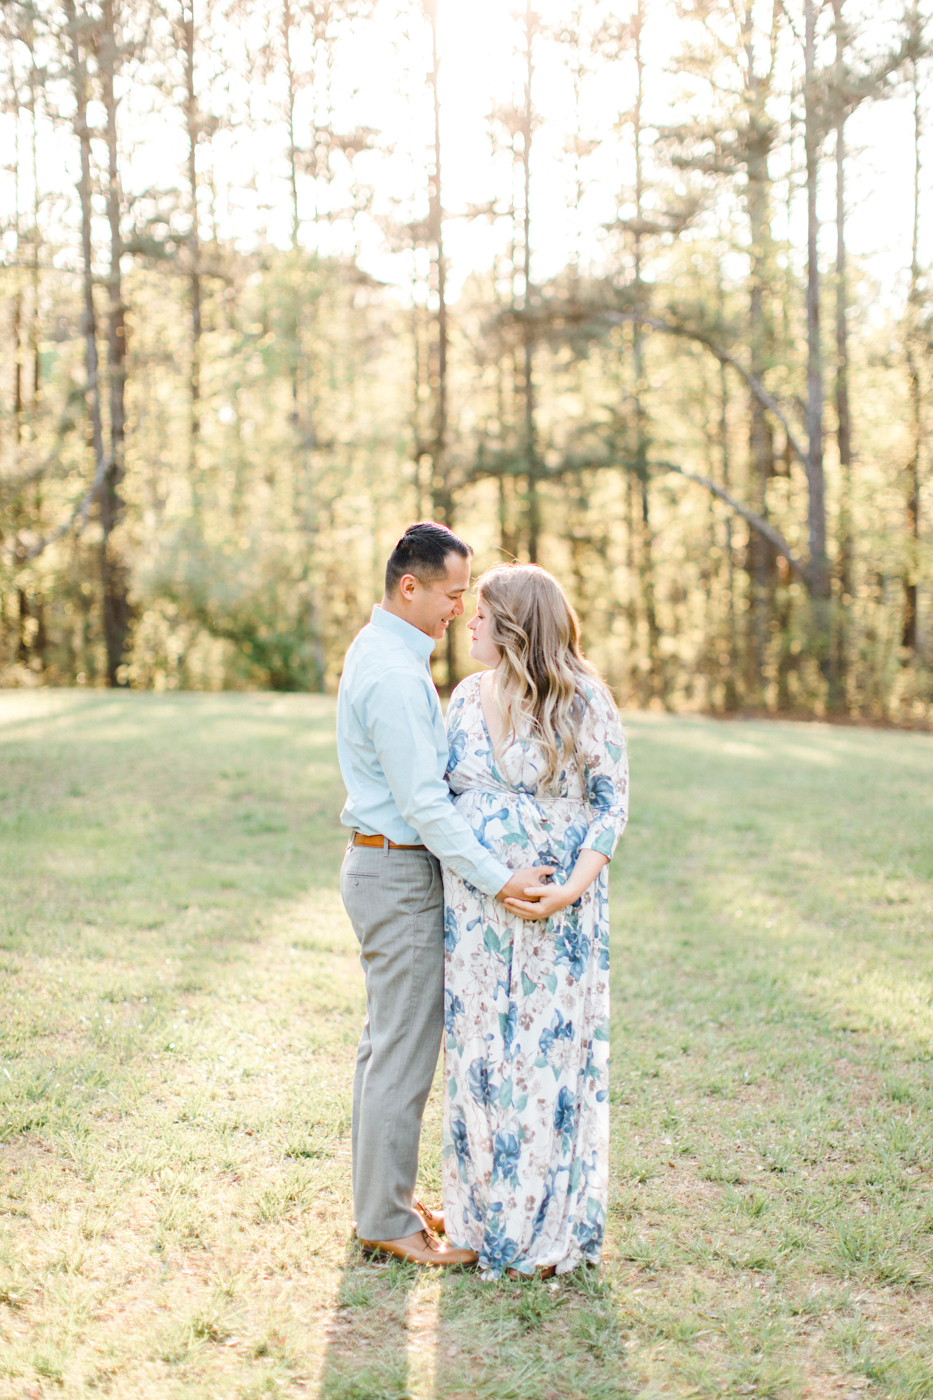 four corners photography atlanta engagement photographer georgia photographer fine art film photographer atlanta natural light photographer newborn photographer family photographer fine art maternity photographer-11.jpg